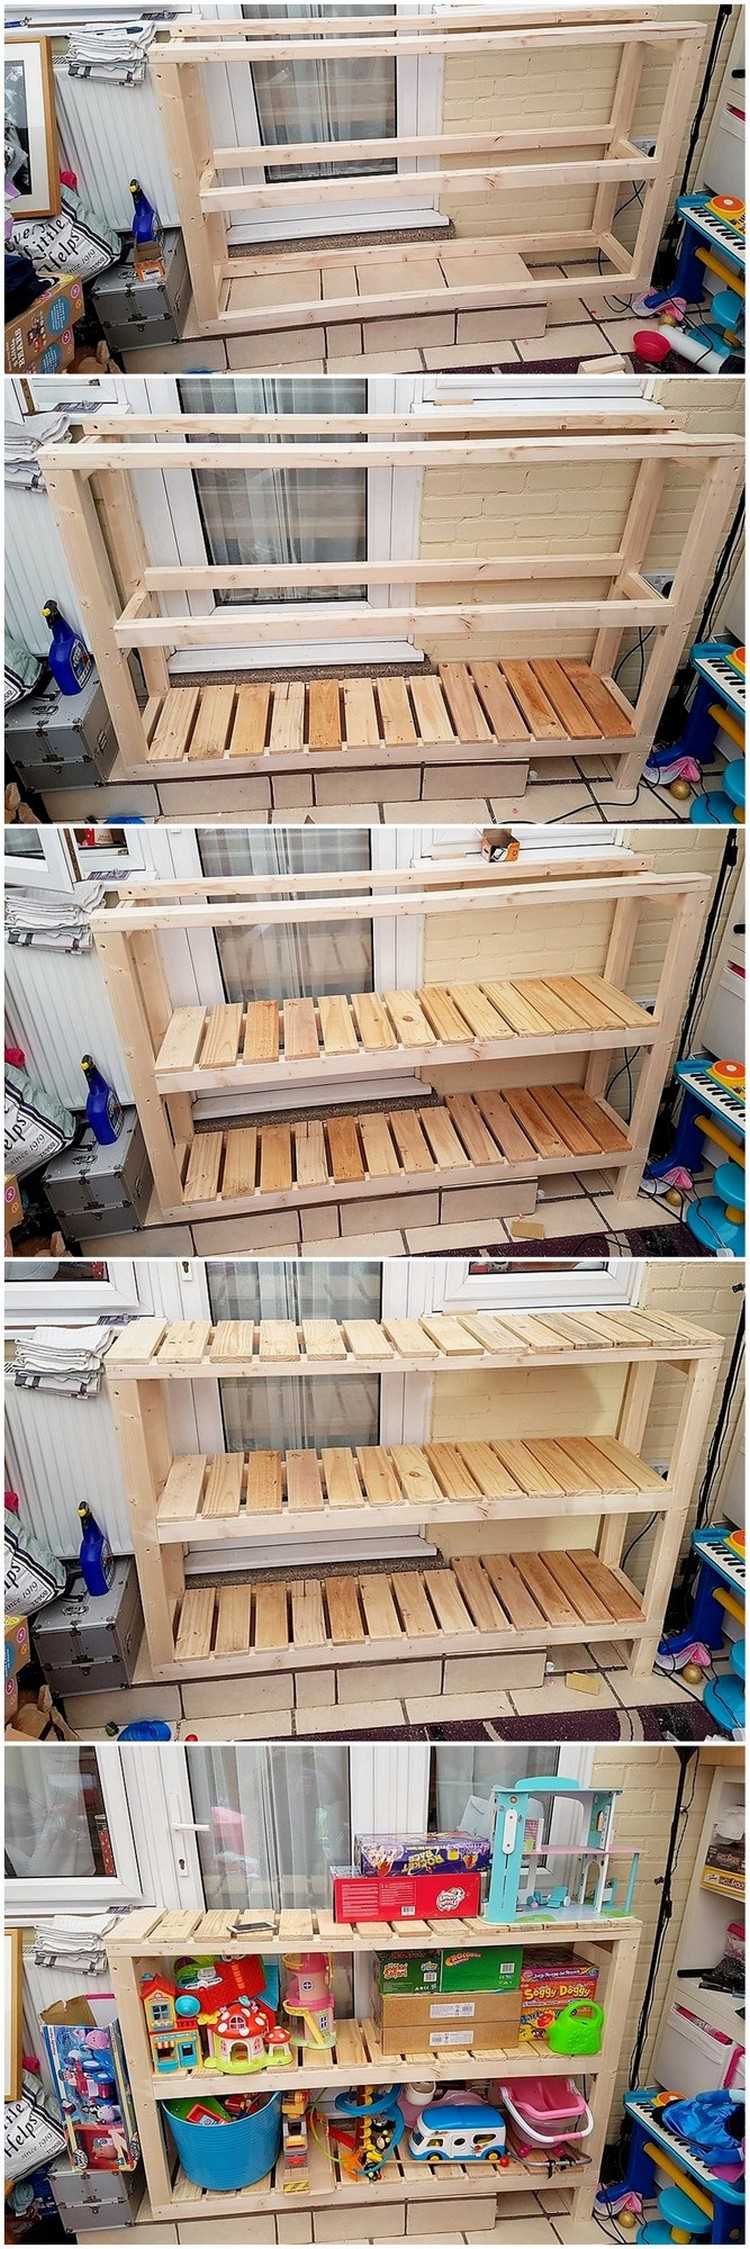 DIY Pallet Shelving Table Plan Step by Step